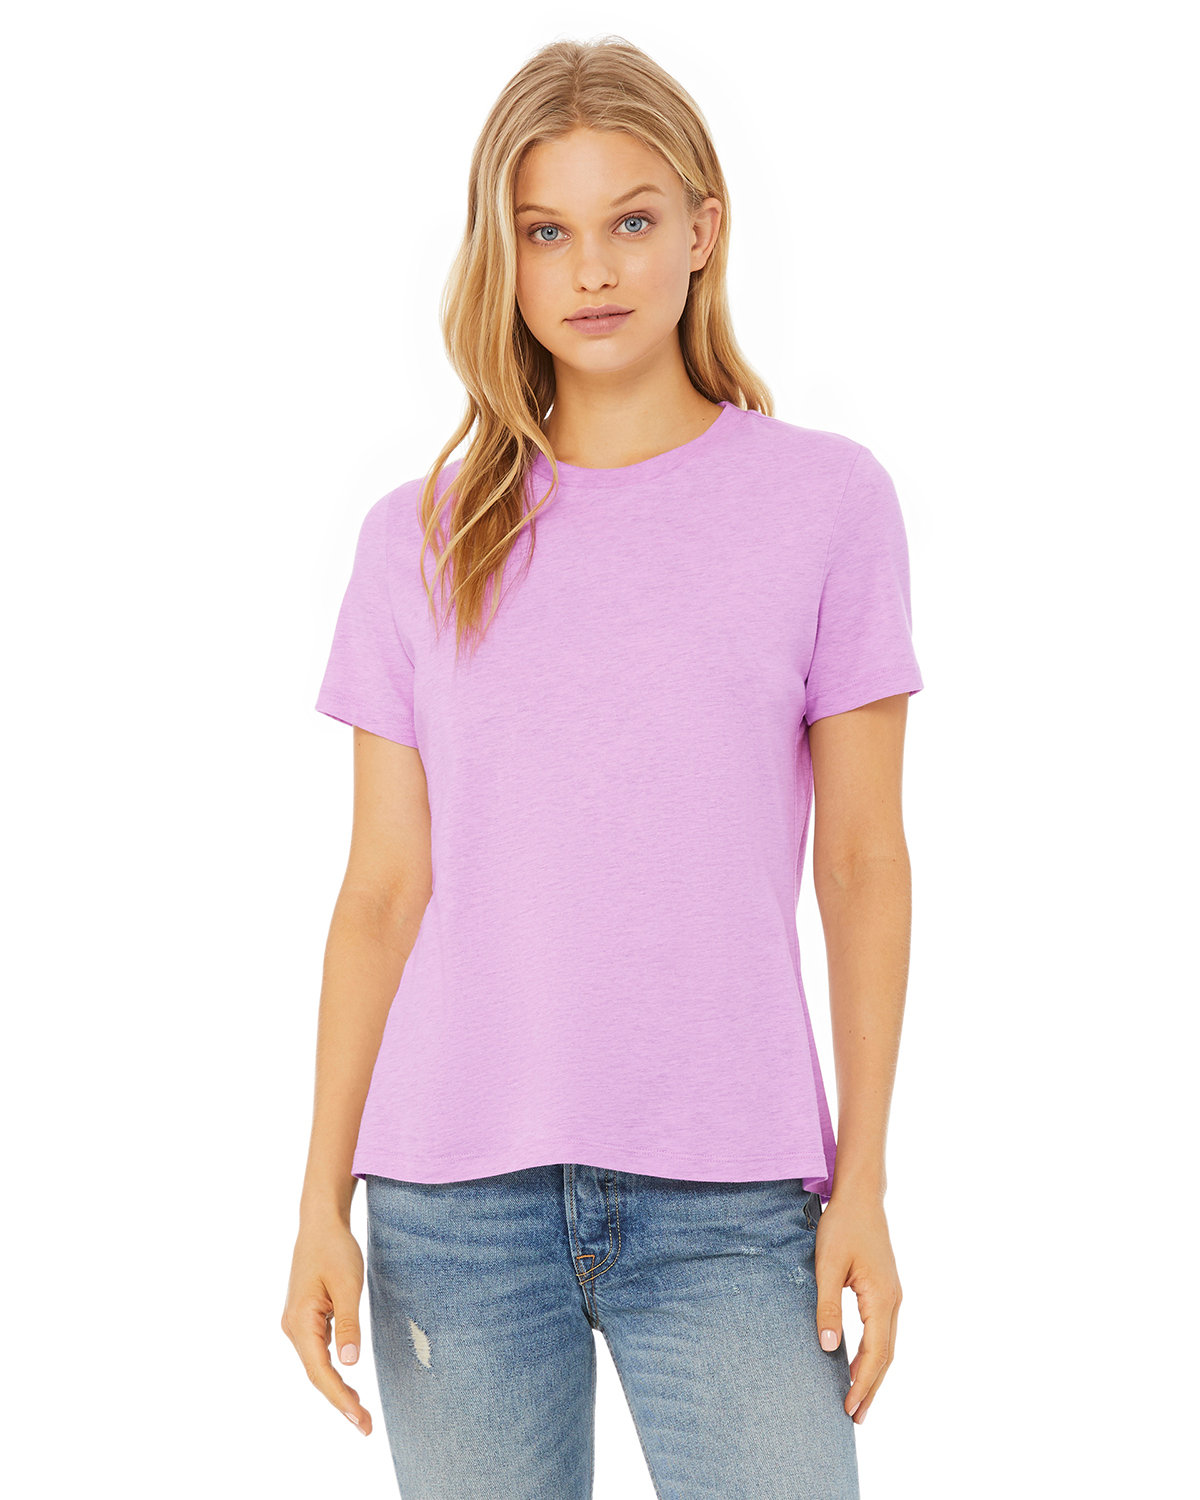 Bella + Canvas Ladies' Relaxed Heather CVC Short-Sleeve T-Shirt HTHR PRISM LILAC